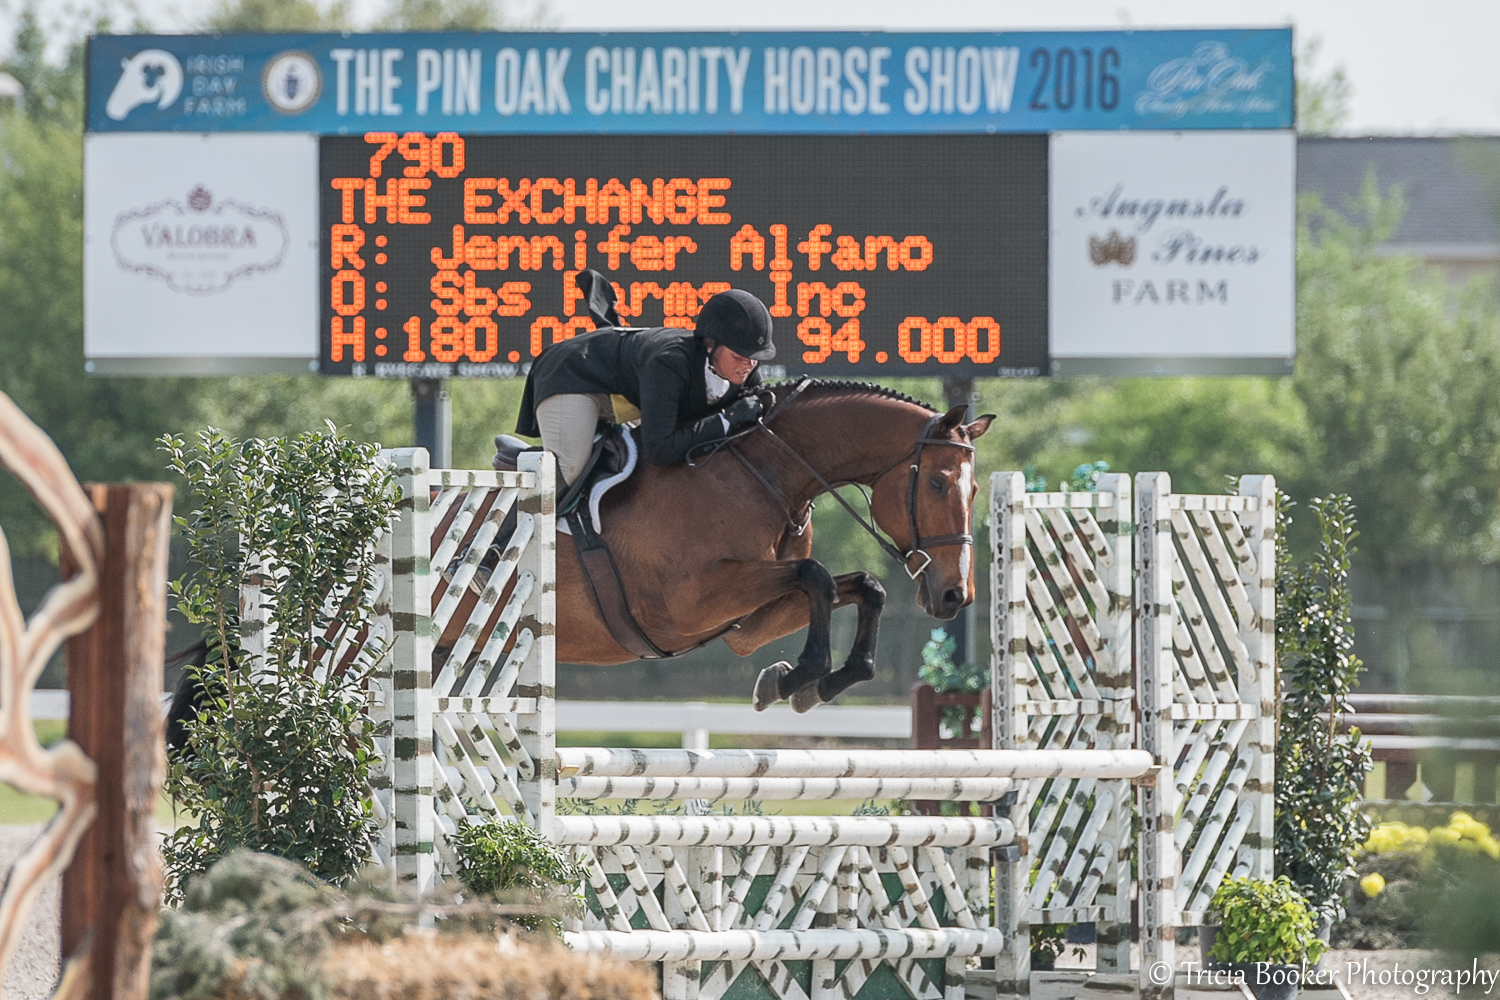 Jennifer Alfano and SBS Farms' The Exchange